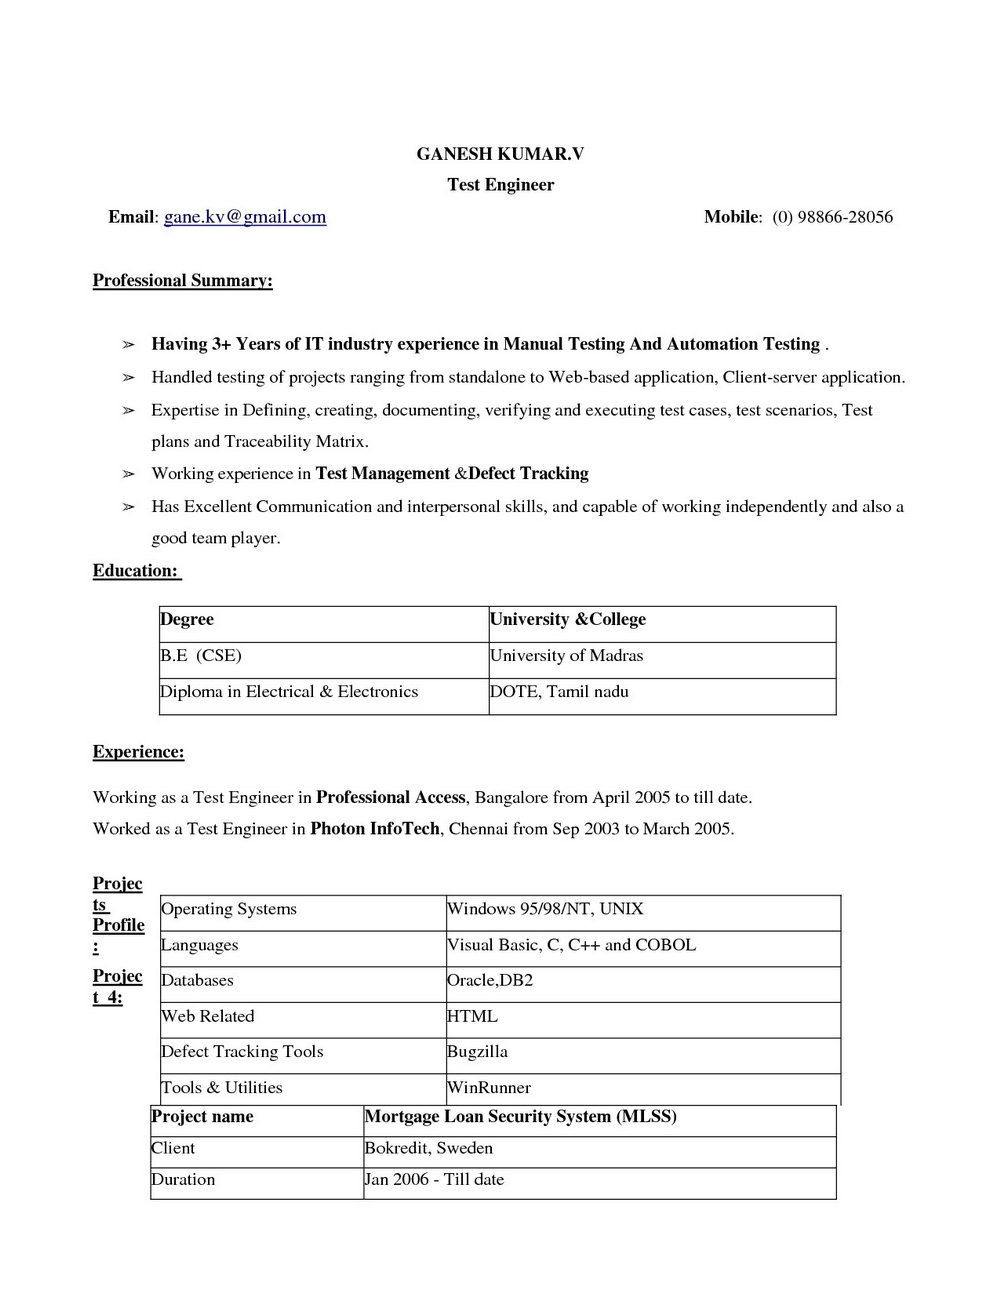 Resume Format Word 2007 Free Download